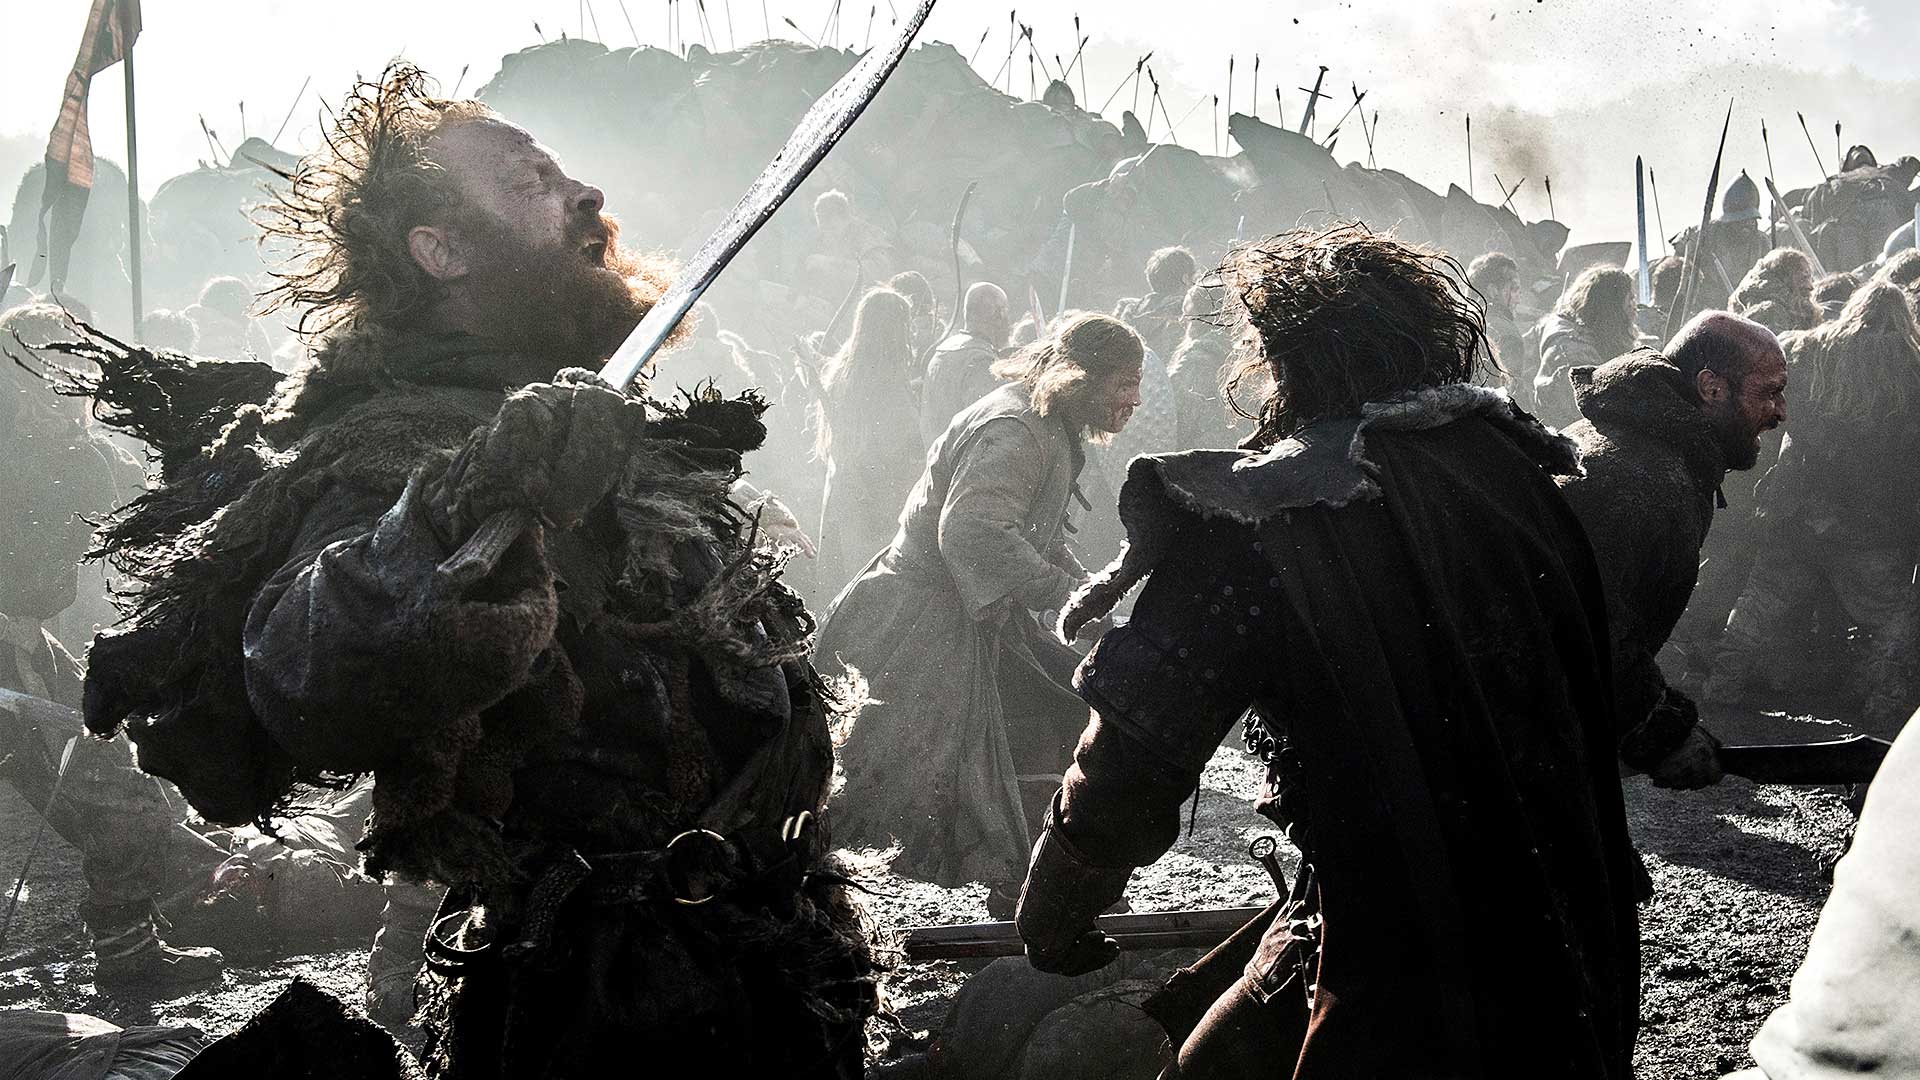 21 Game Of Thrones Episodes You Should Watch Before Season 8